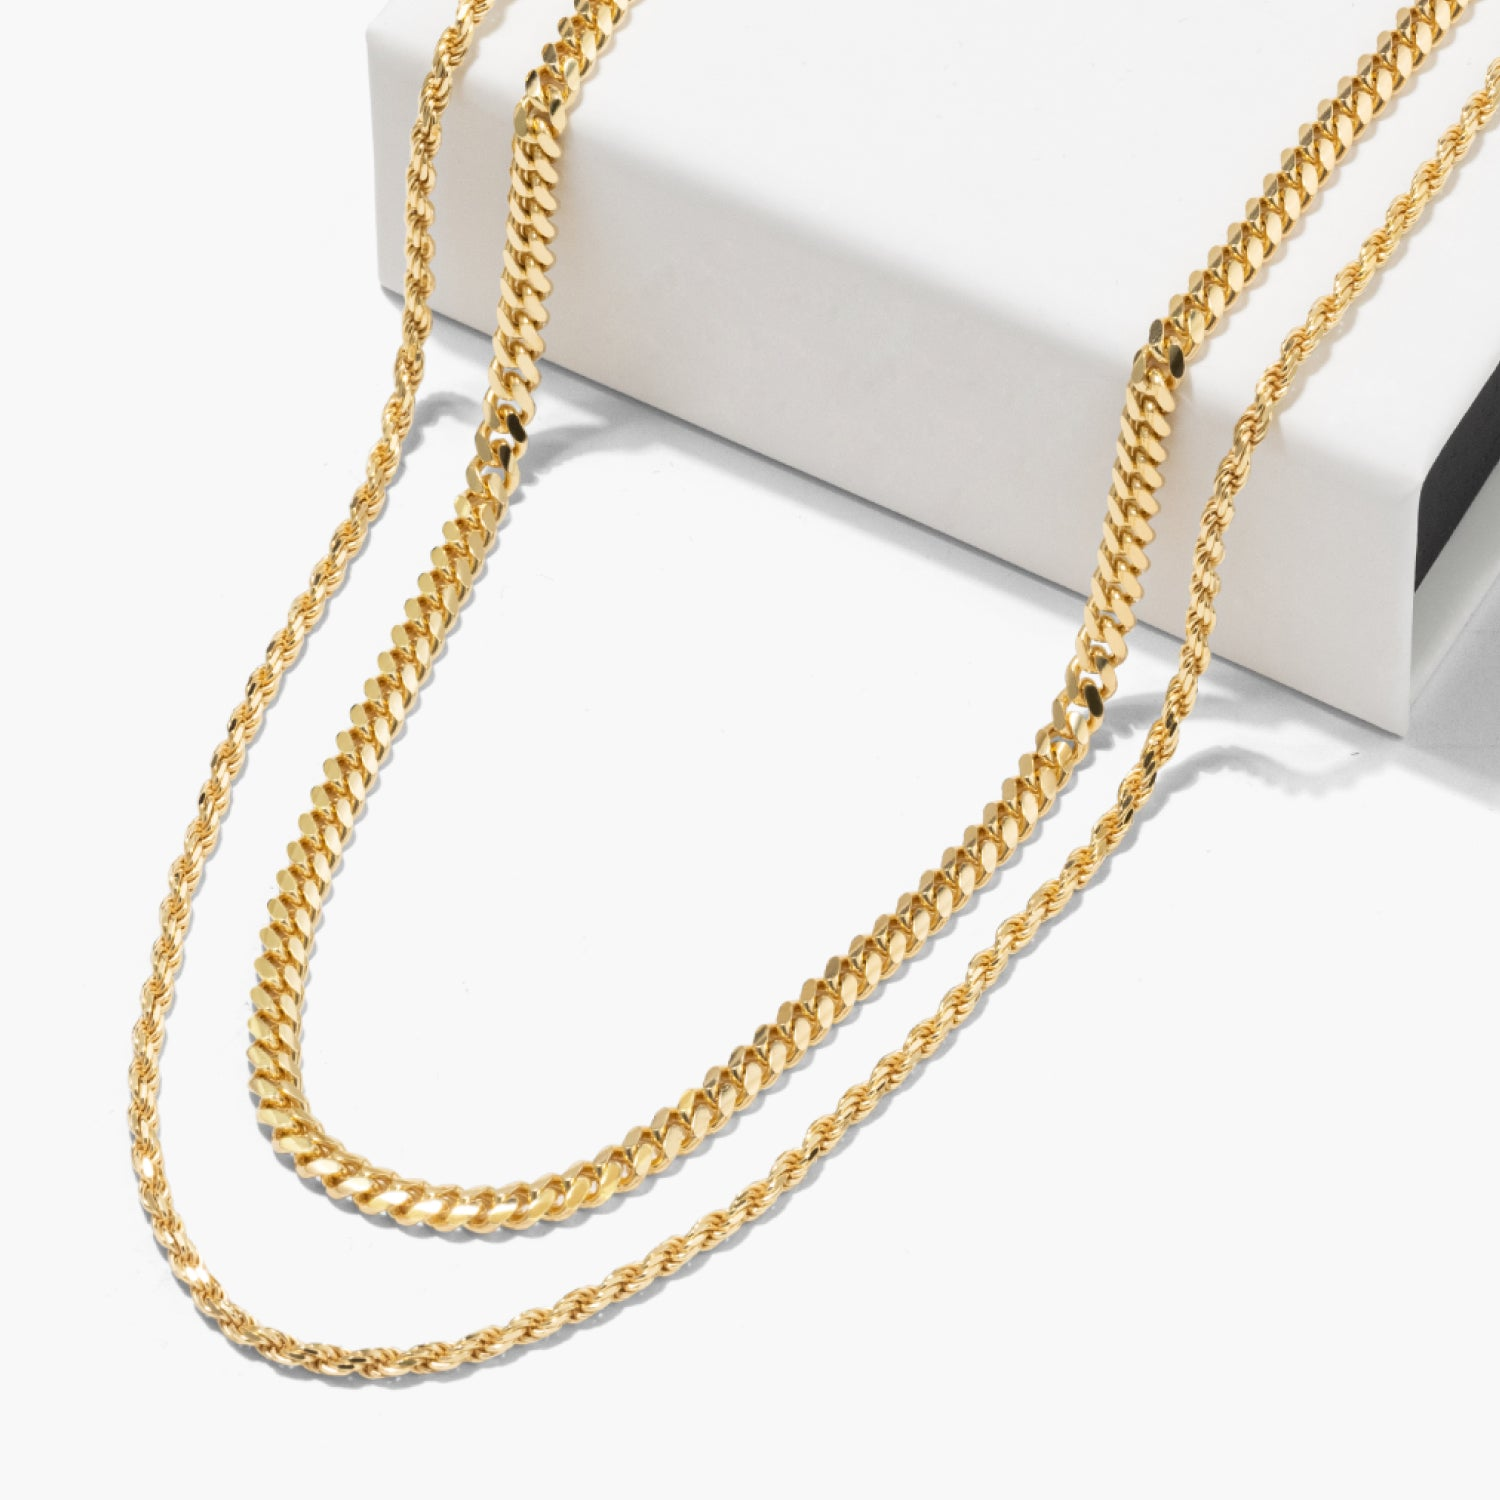 Cuban Link + Rope Chain StackImage 2